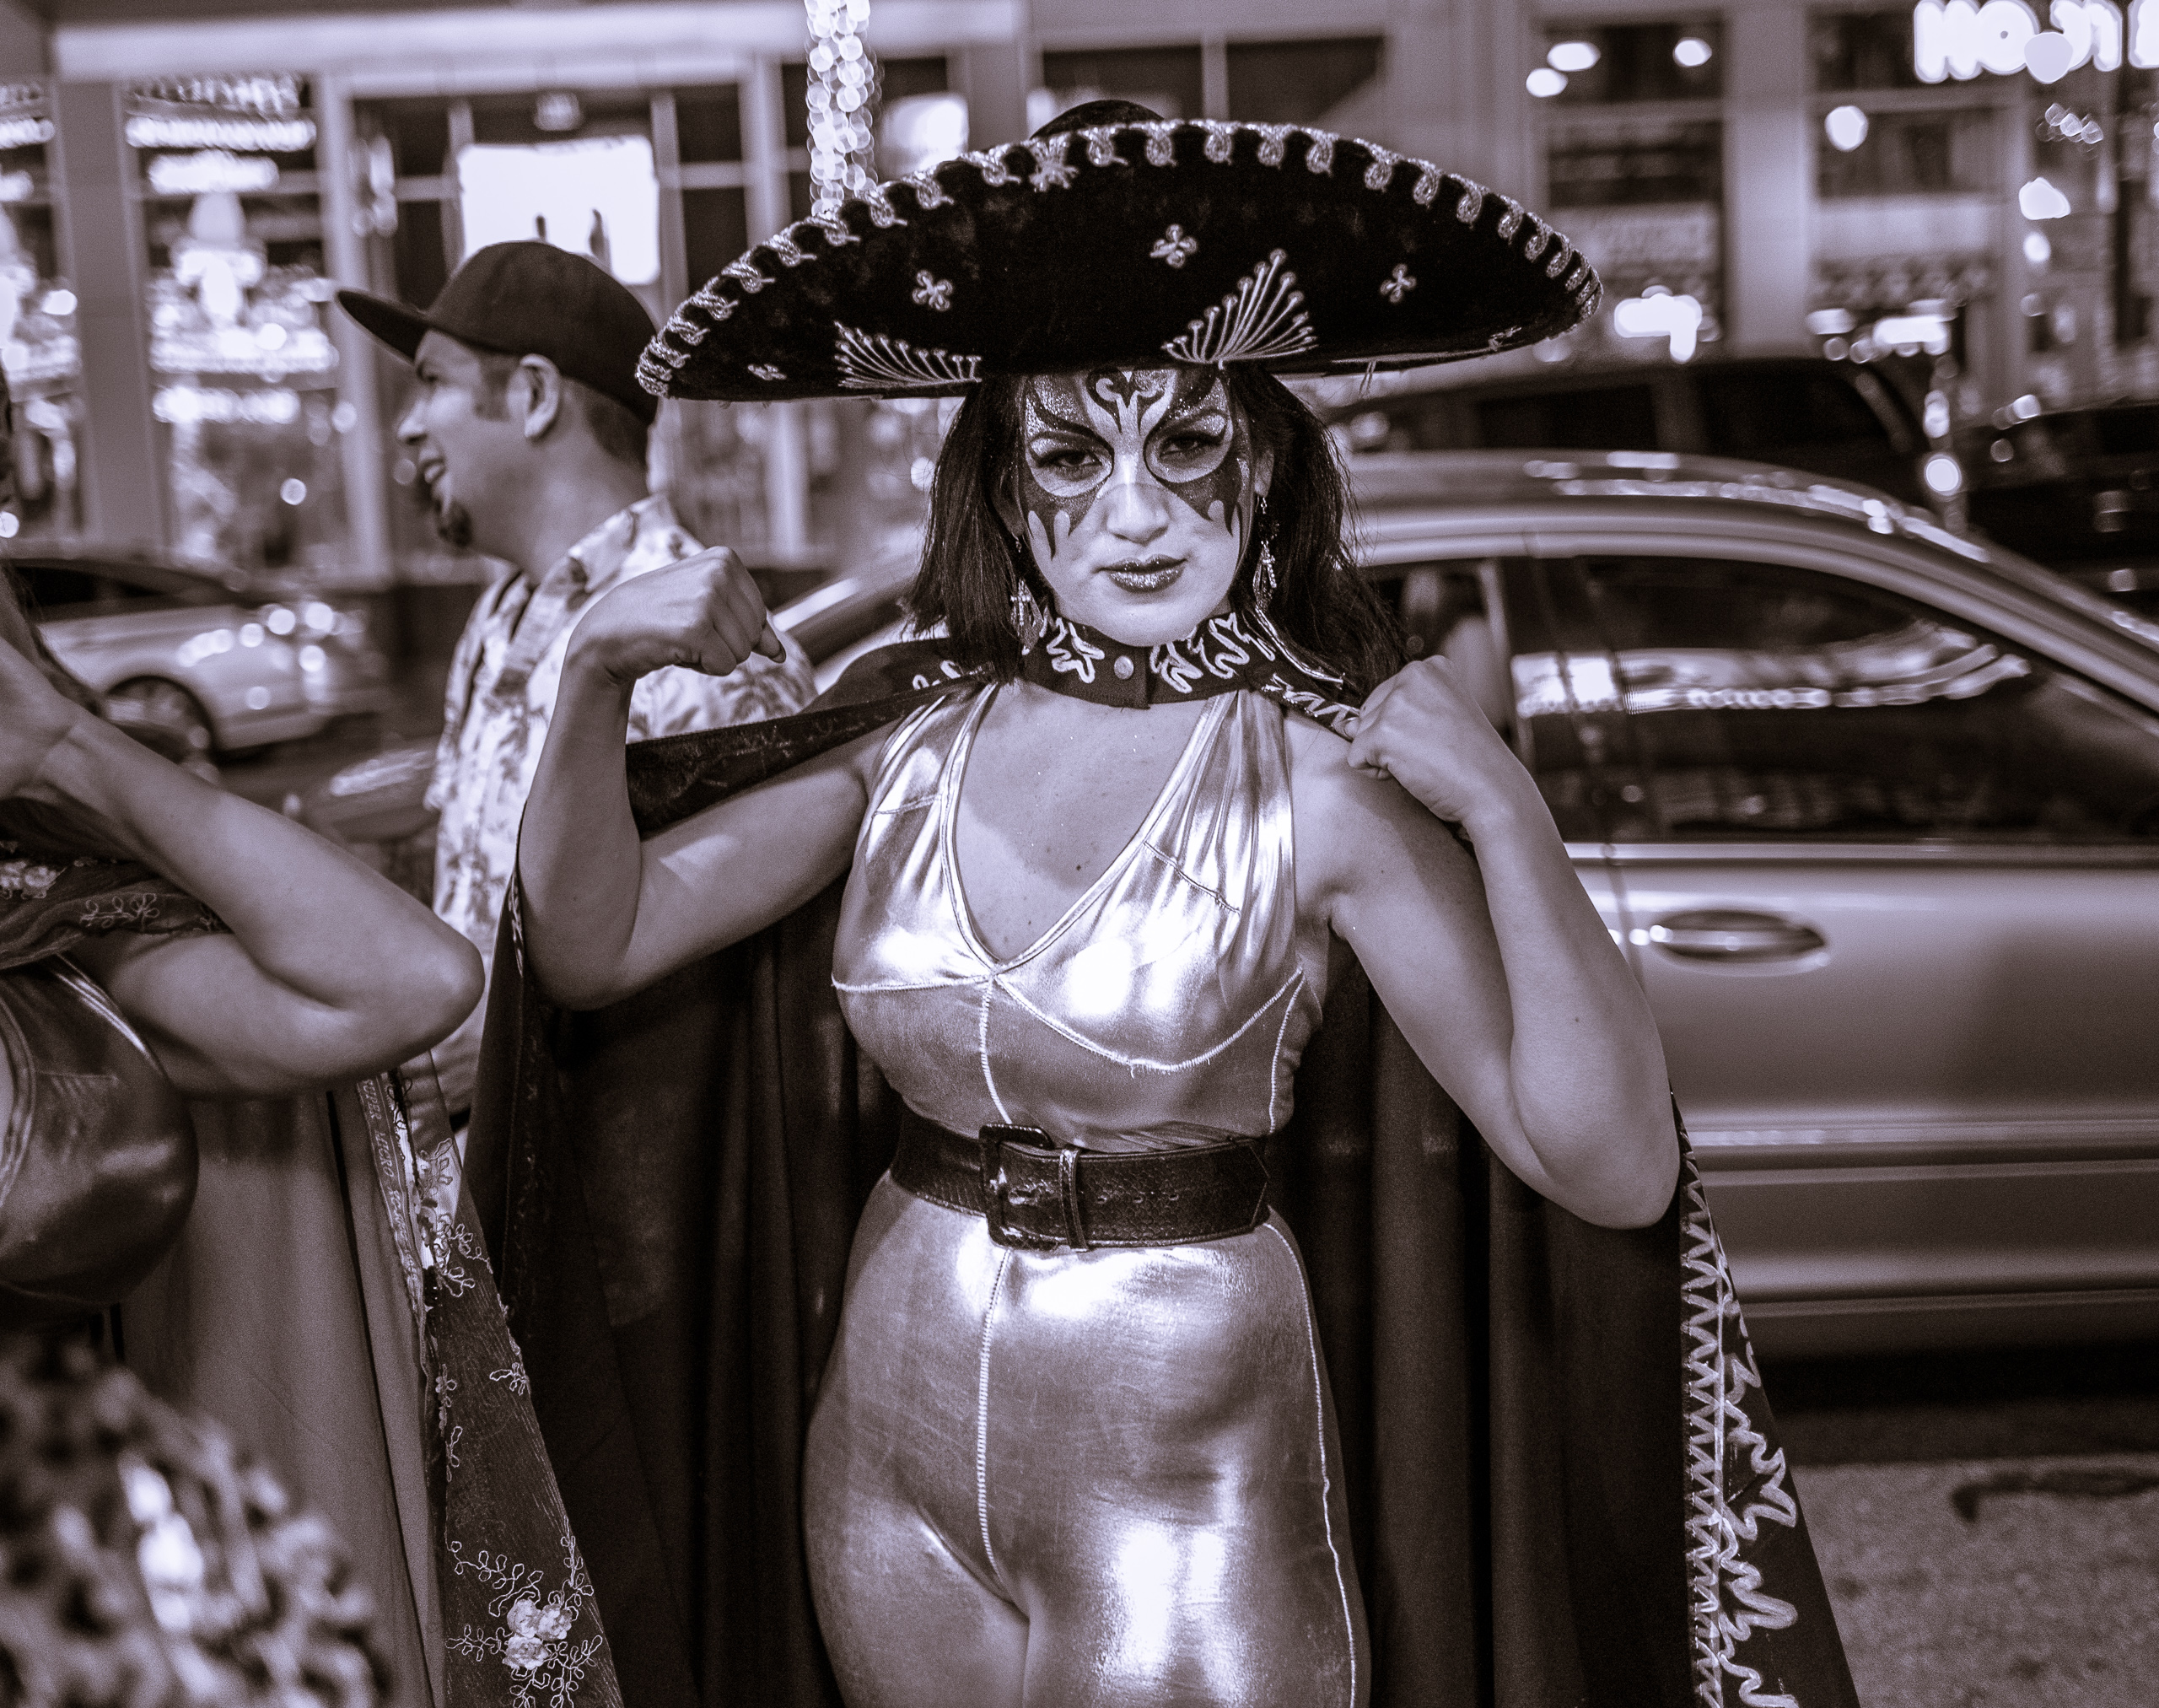 a female lucha libre wrestler in a mylar catsuit with a painted face and a huge sombrero flexes her muscles on Hollywood Blvd